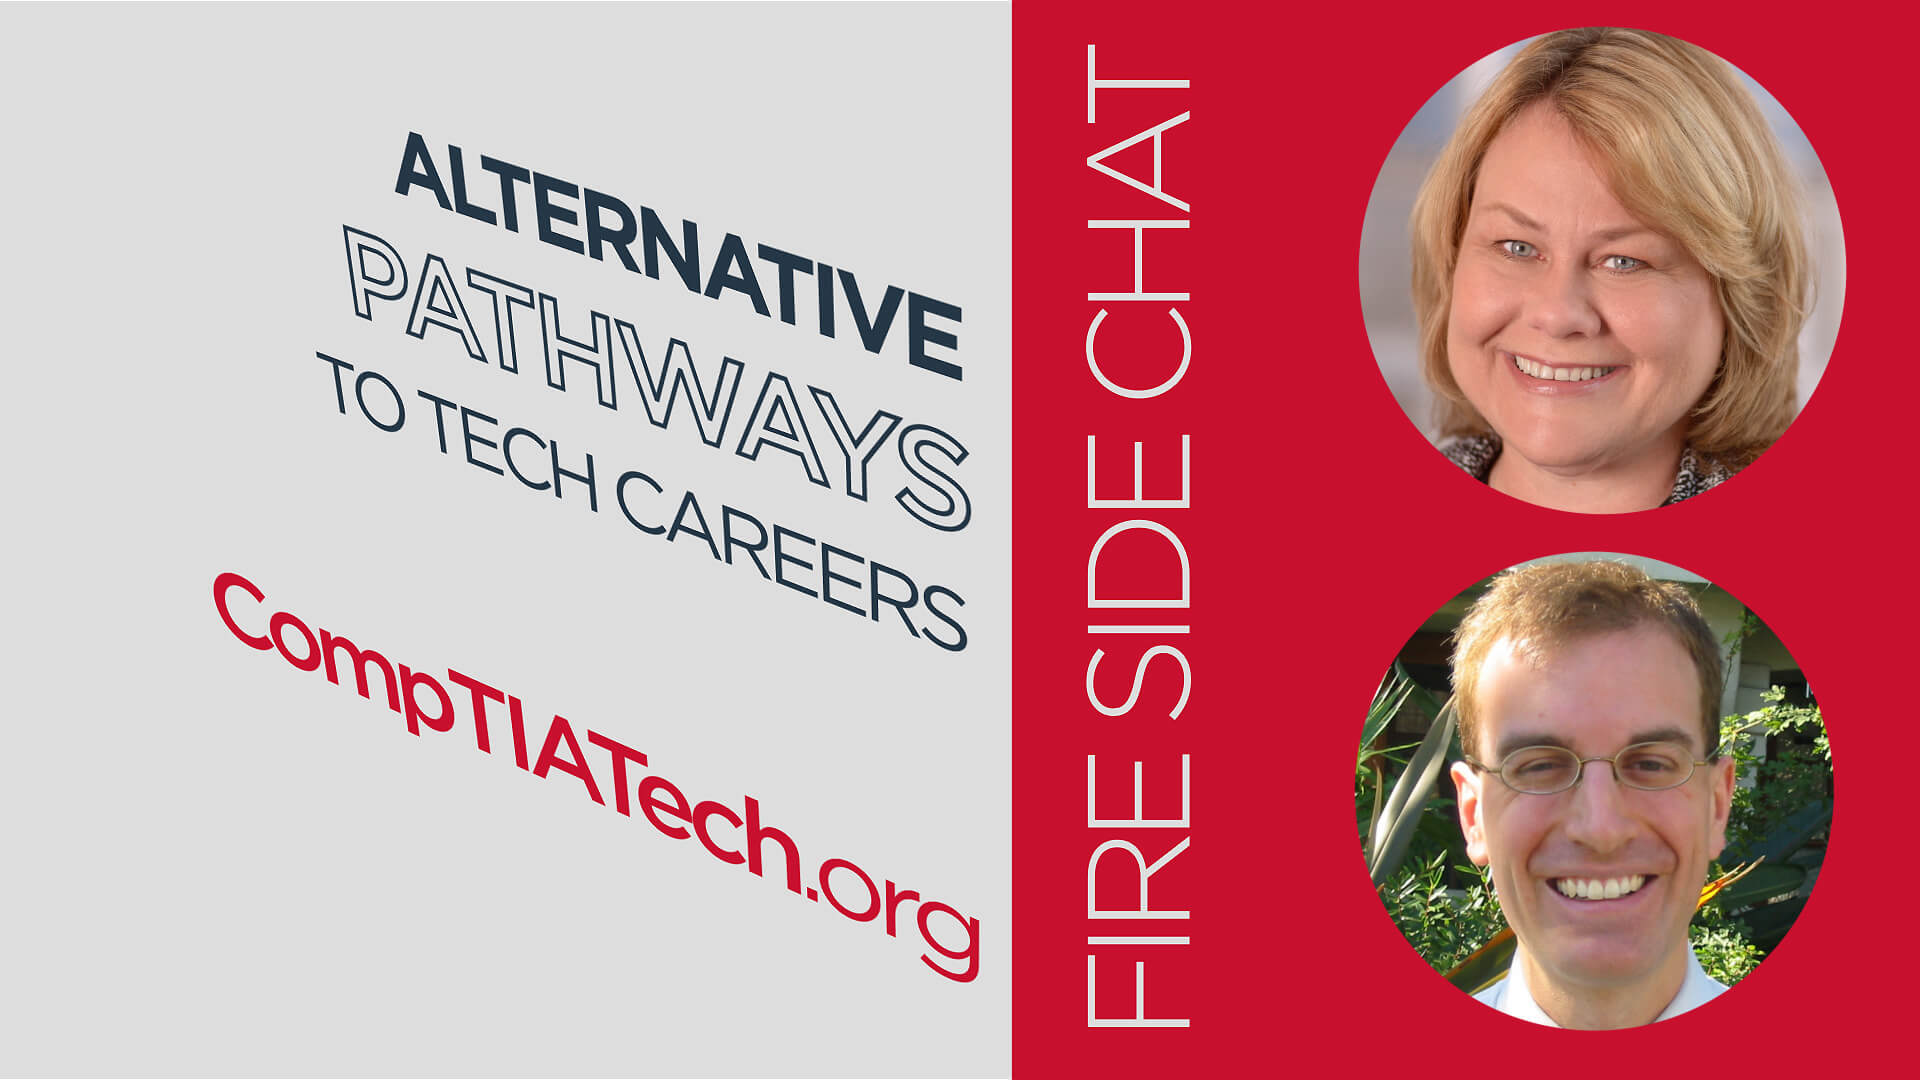 Alternative Pathways to Tech Careers